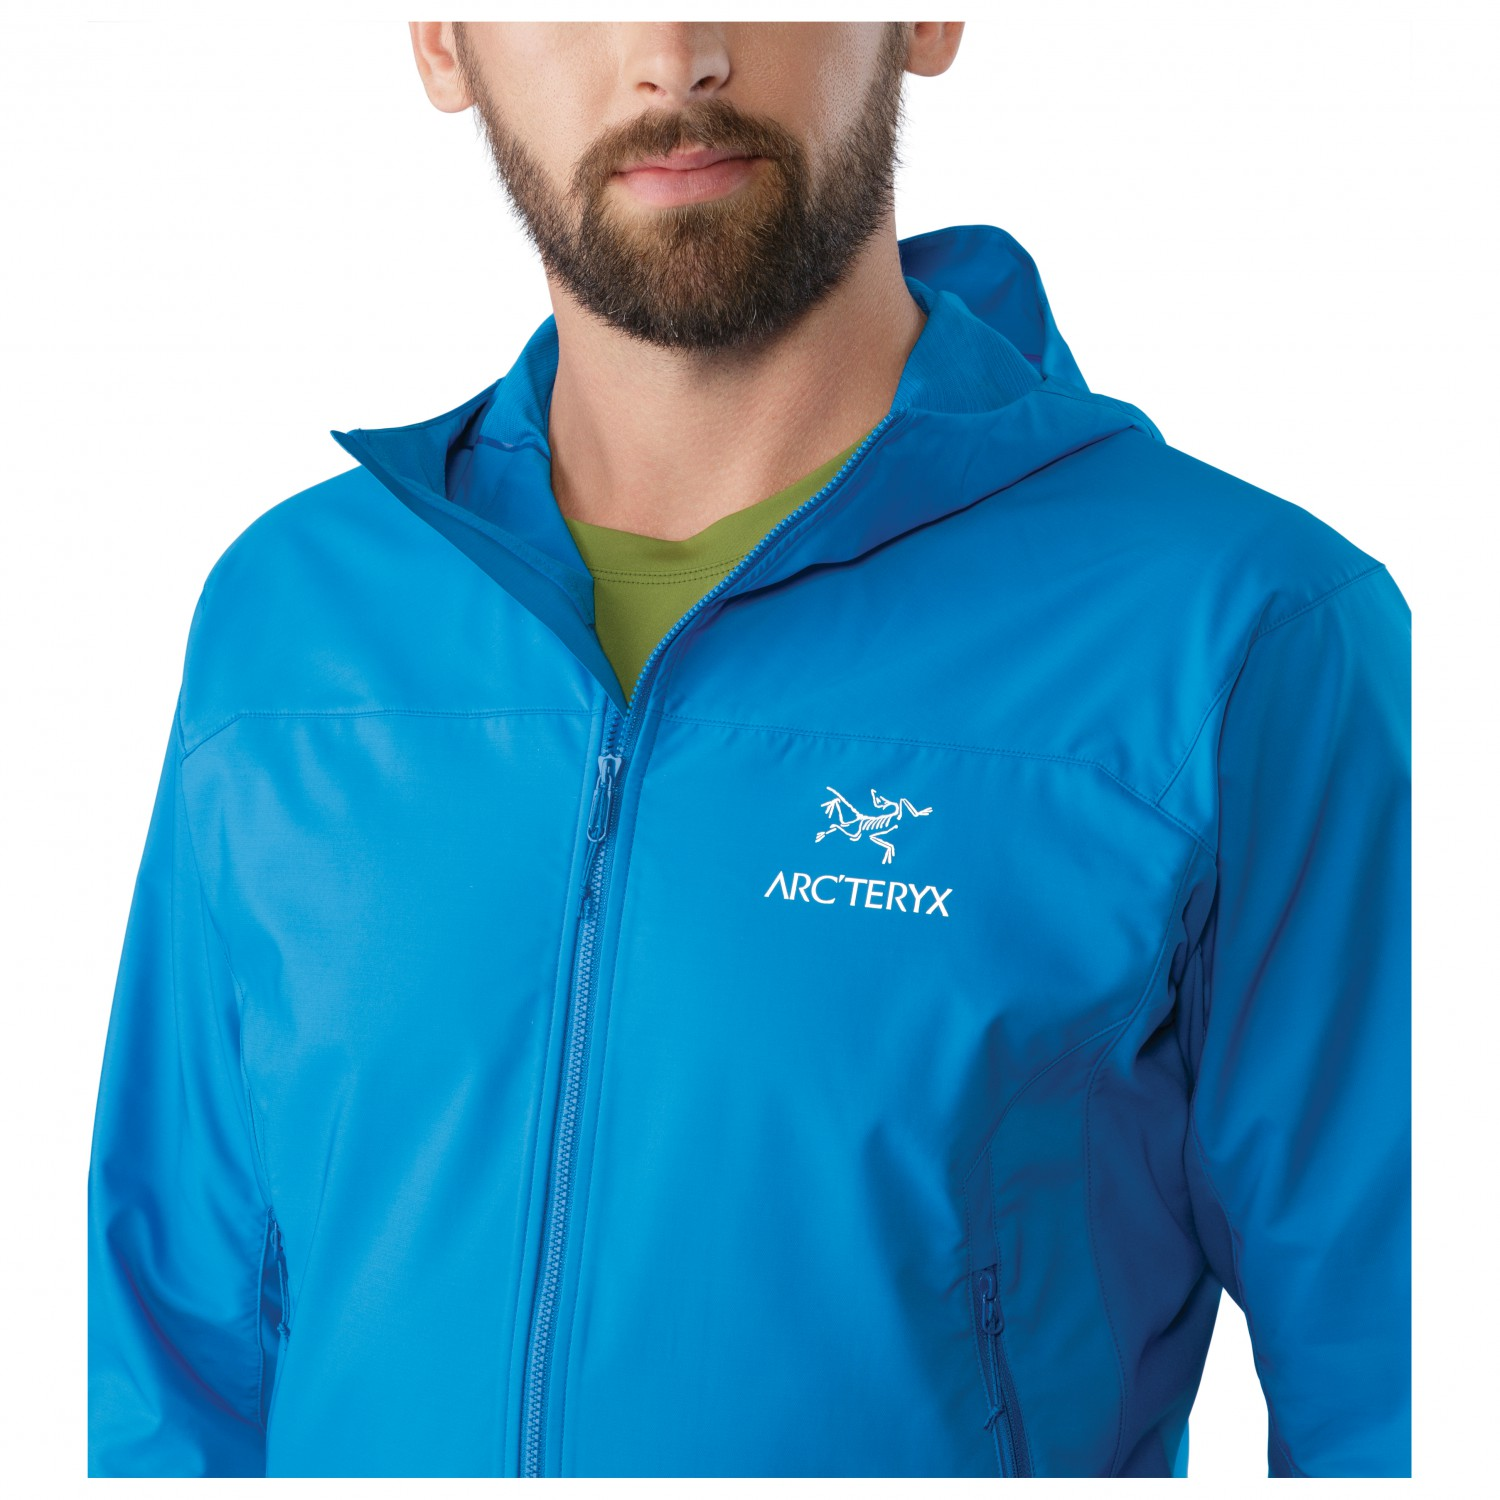 1e1ac9663f8 Arc'teryx Tenquille Hoody - Softshell Jacket Men's | Free UK ...